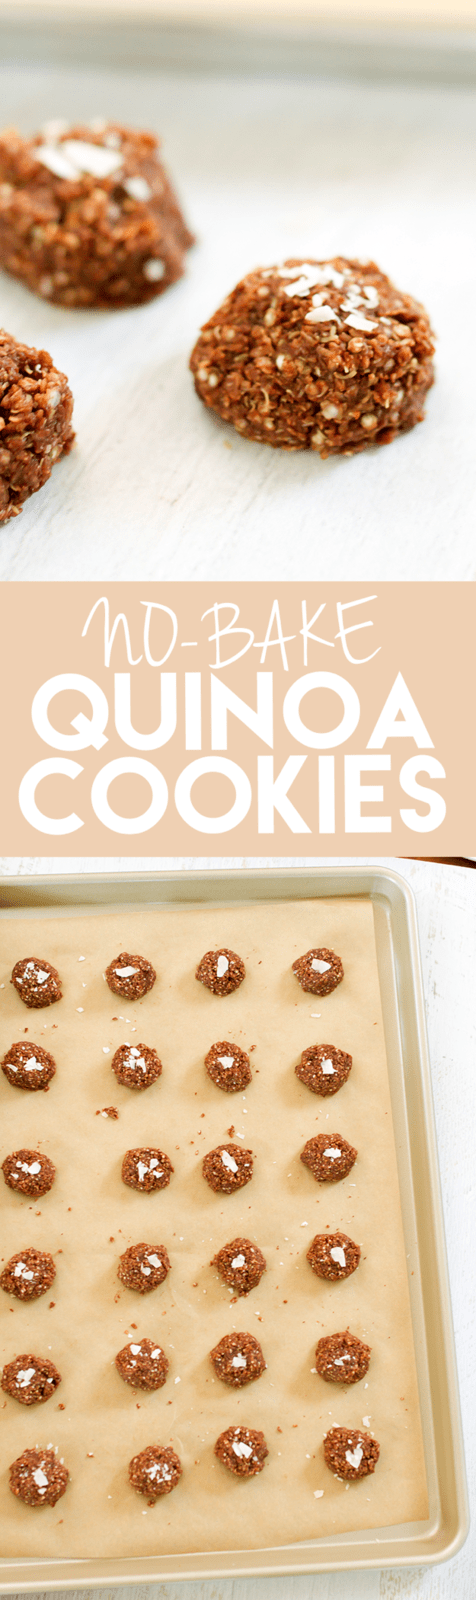 Healthy No Bake Quinoa Cookies -- They're the perfect sweet treat for the holiday season. Gluten-free & vegan.